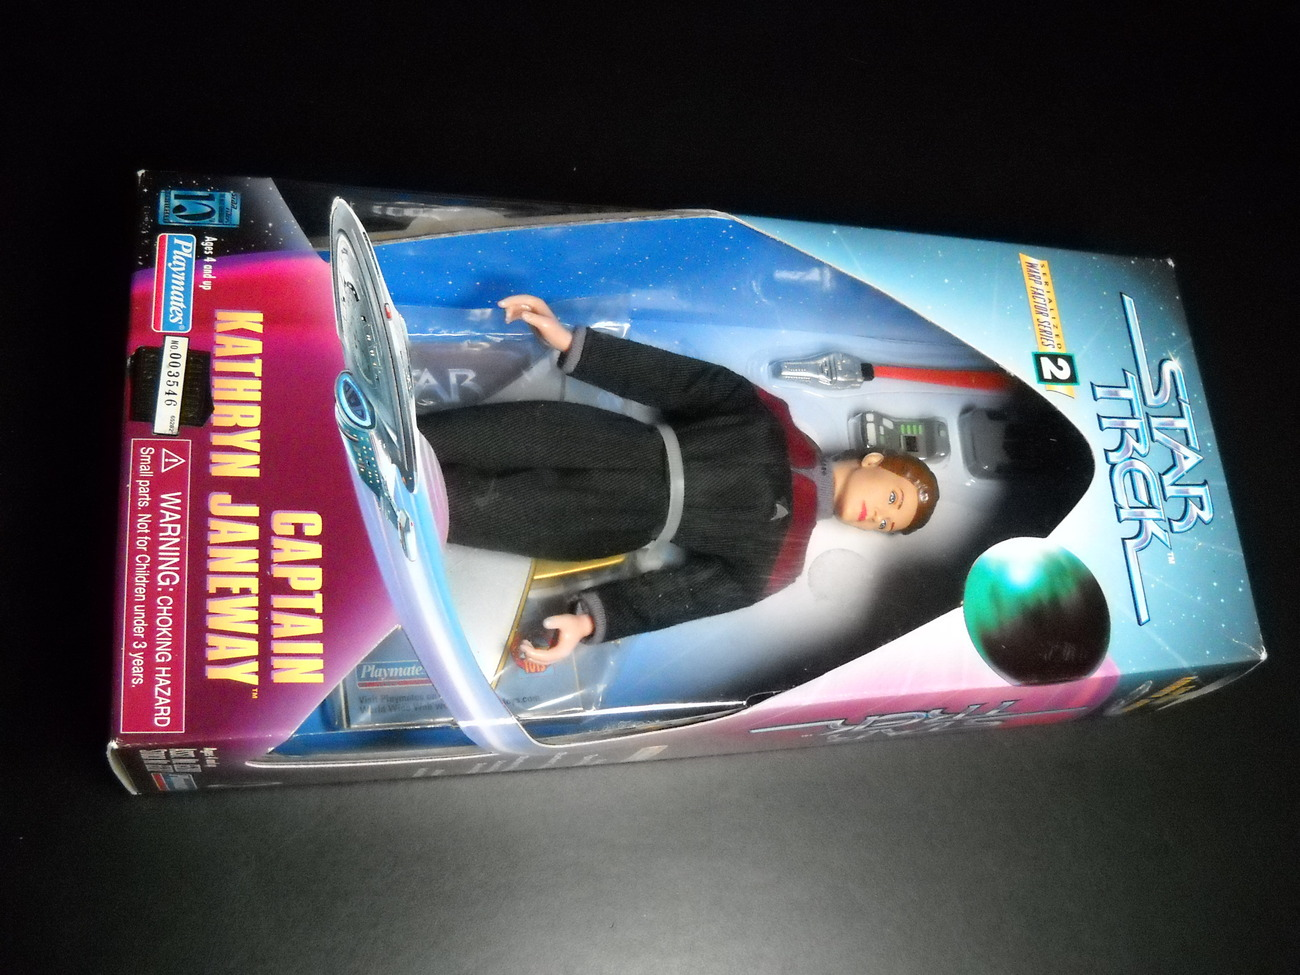 Toy star trek playmates warp factor series two captain kathryn janeway 1997 9 inch boxed sealed 01